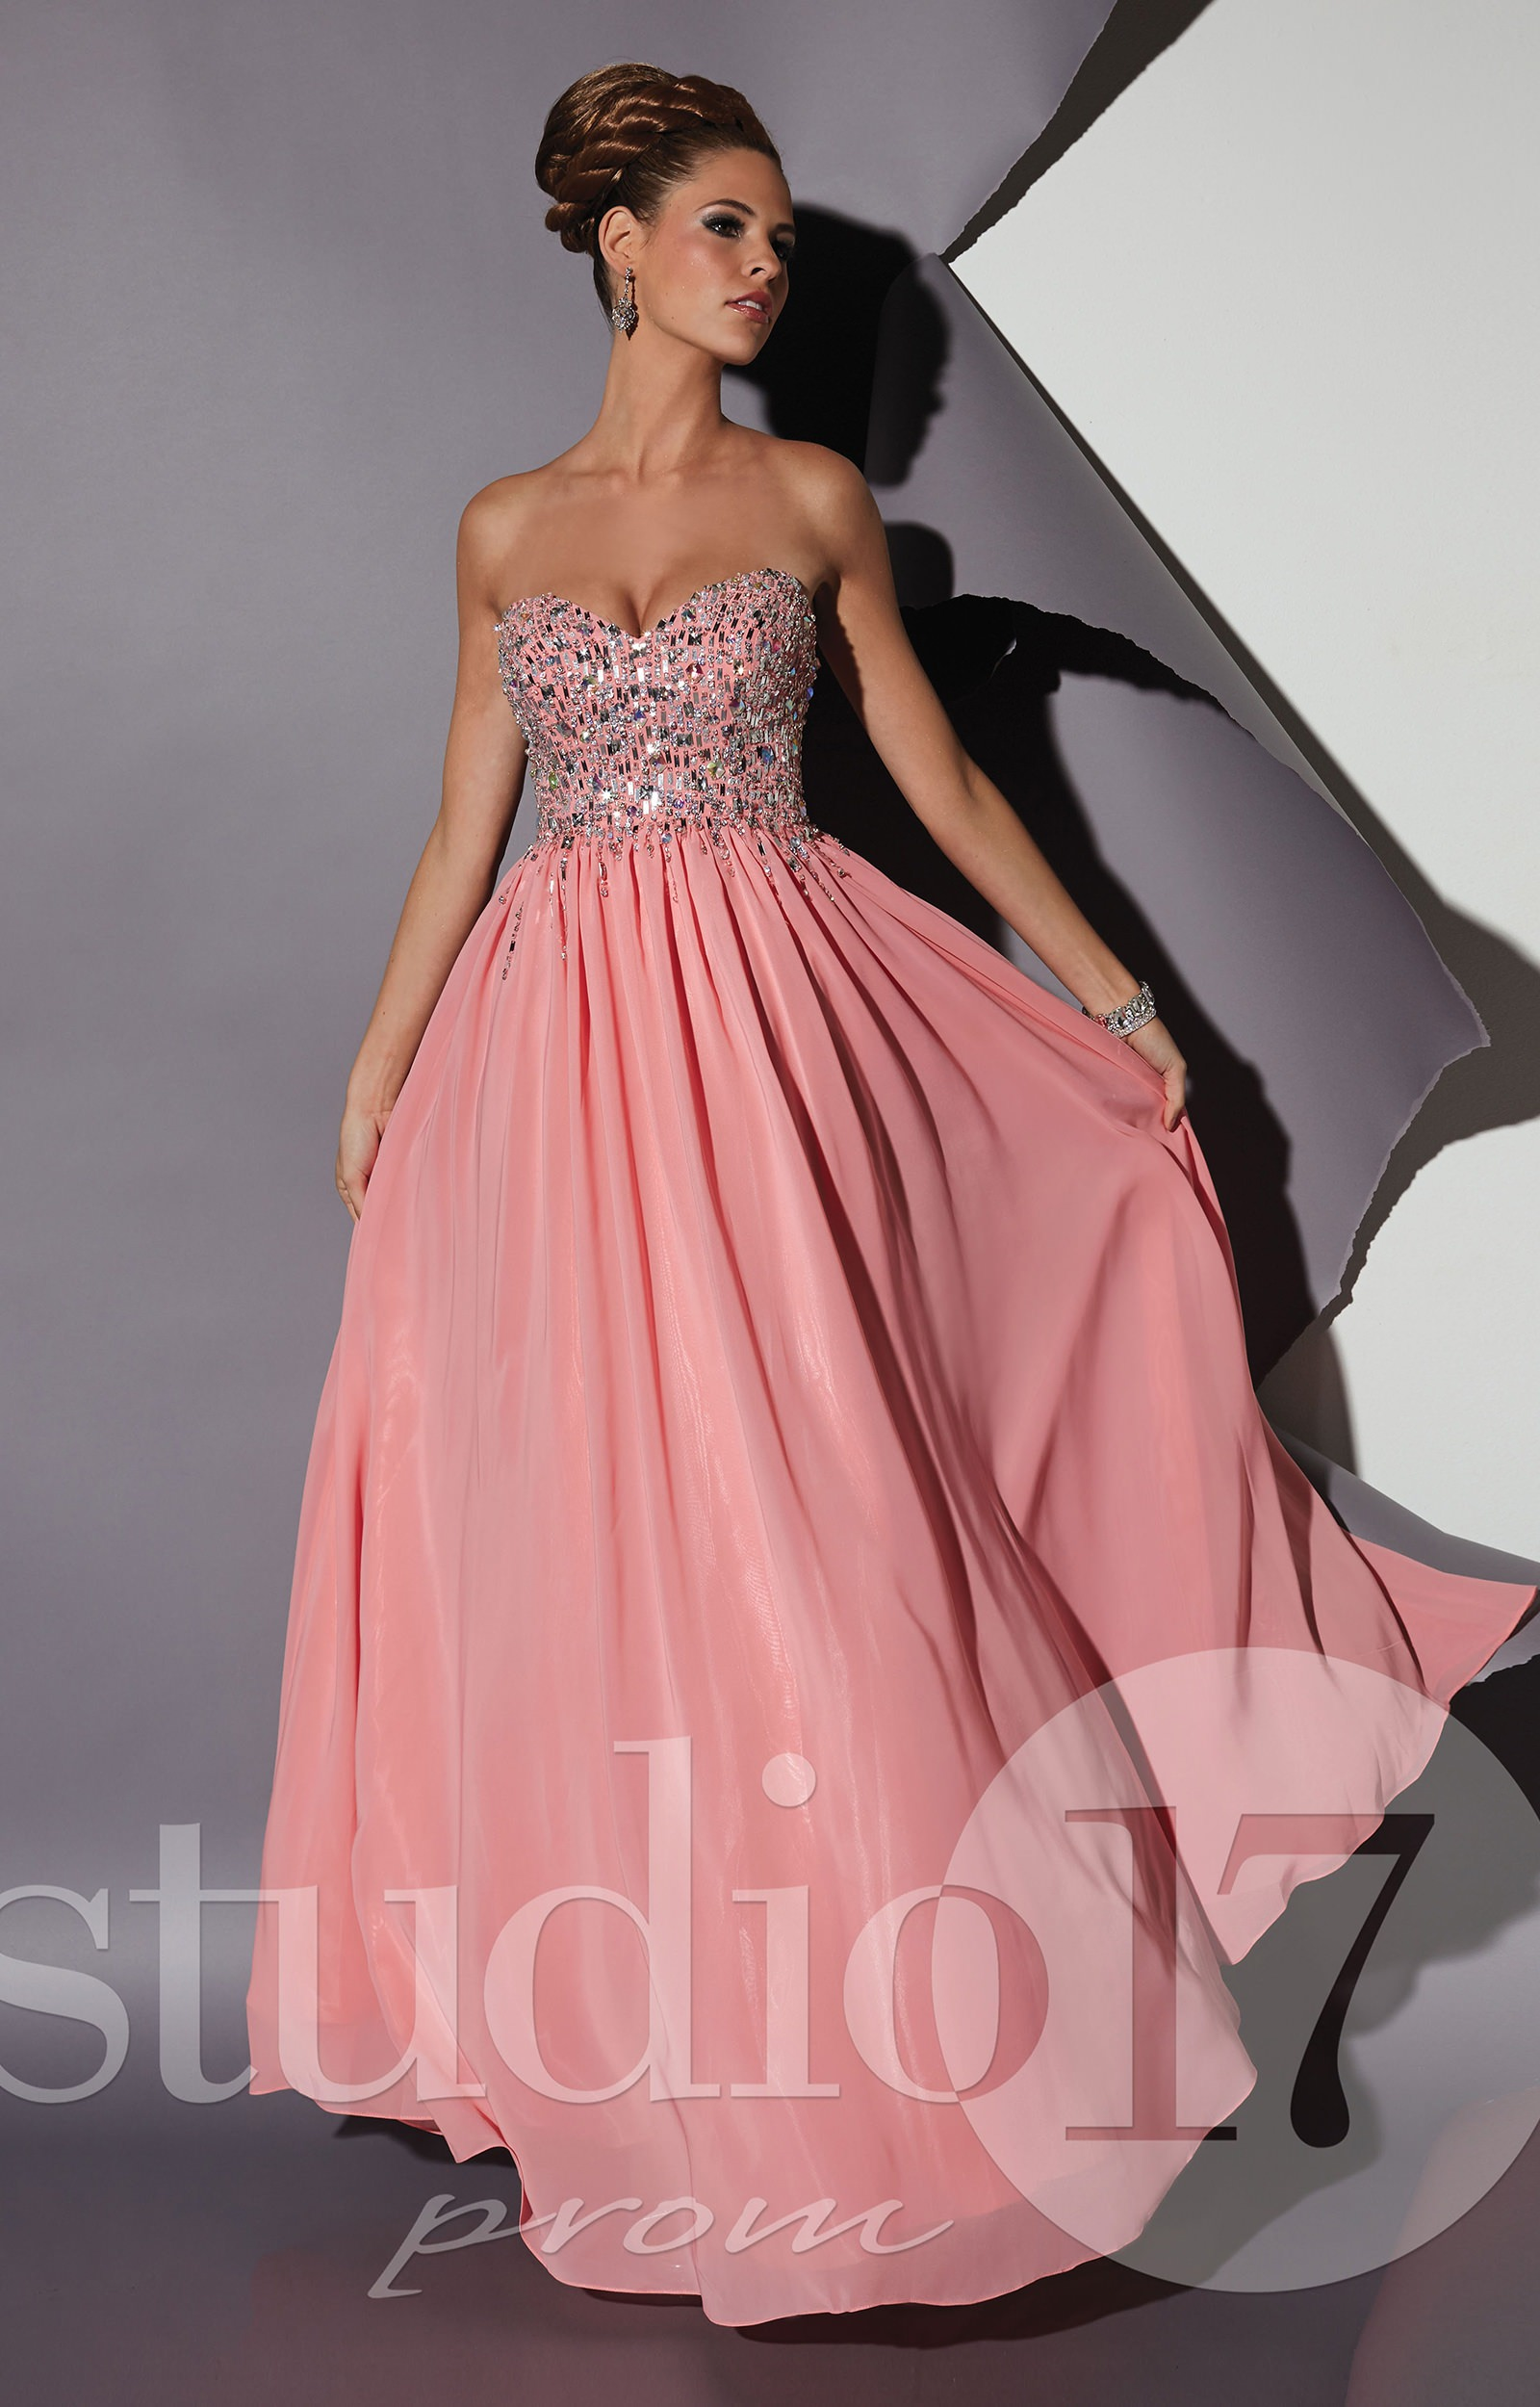 Studio 17 12452 - Flamingo Dreams Gown Prom Dress